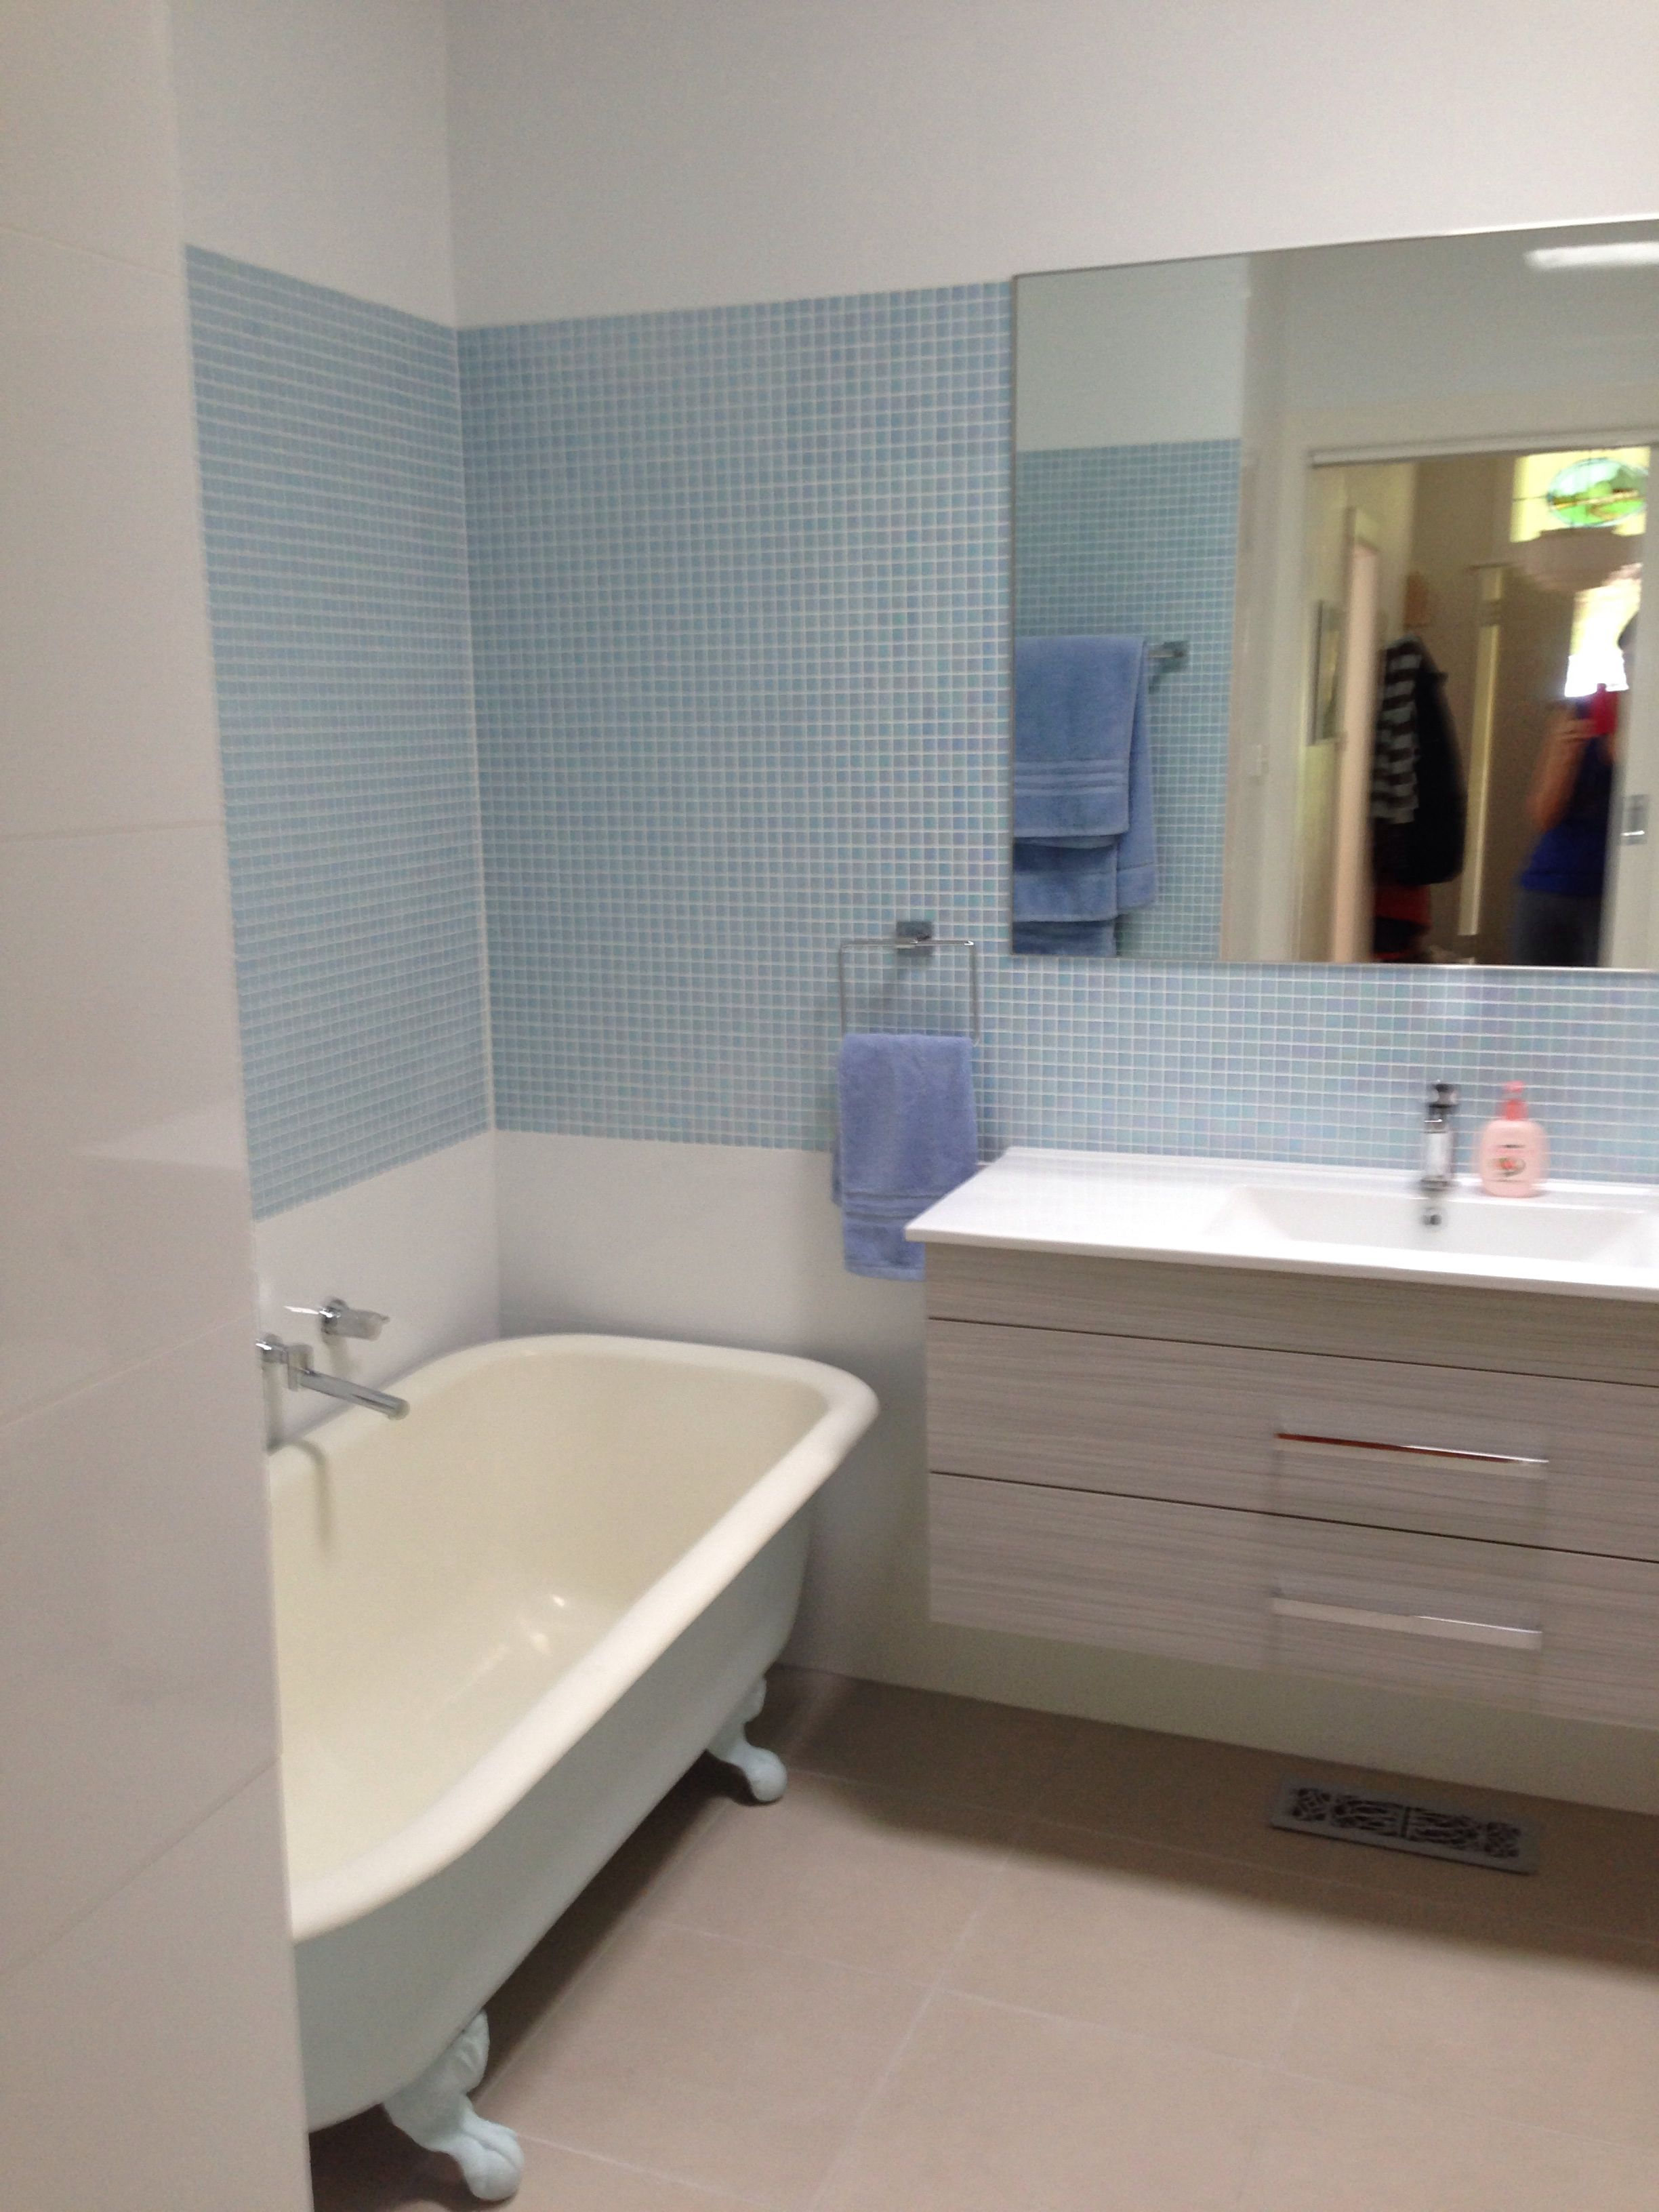 Dulux bathroom ideas - New Bathroom Bath Painted In Dulux Shimmer Half